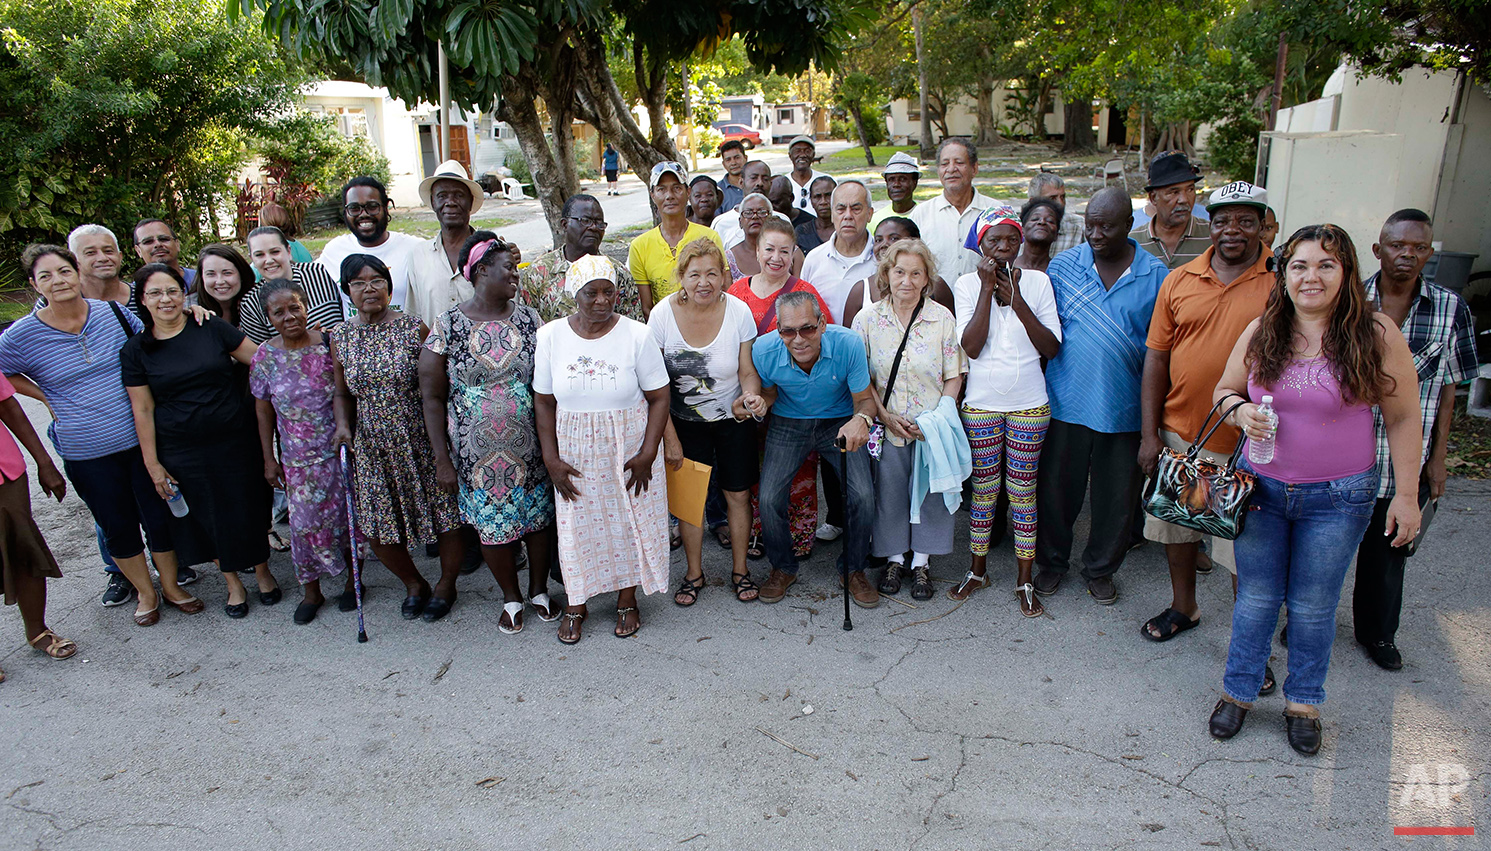 In this Tuesday, June 14, 2016 photo, residents of the Little Farm trailer park pose for a group photo in El Portal, Fla. The 15-acre neighborhood was home to a close-knit community until the site was purchased by Wealthy Delight LLC, and residents were evicted. The area is in preliminary planning for mixed use development. (AP Photo/Lynne Sladky)See these photos on  APImages.com